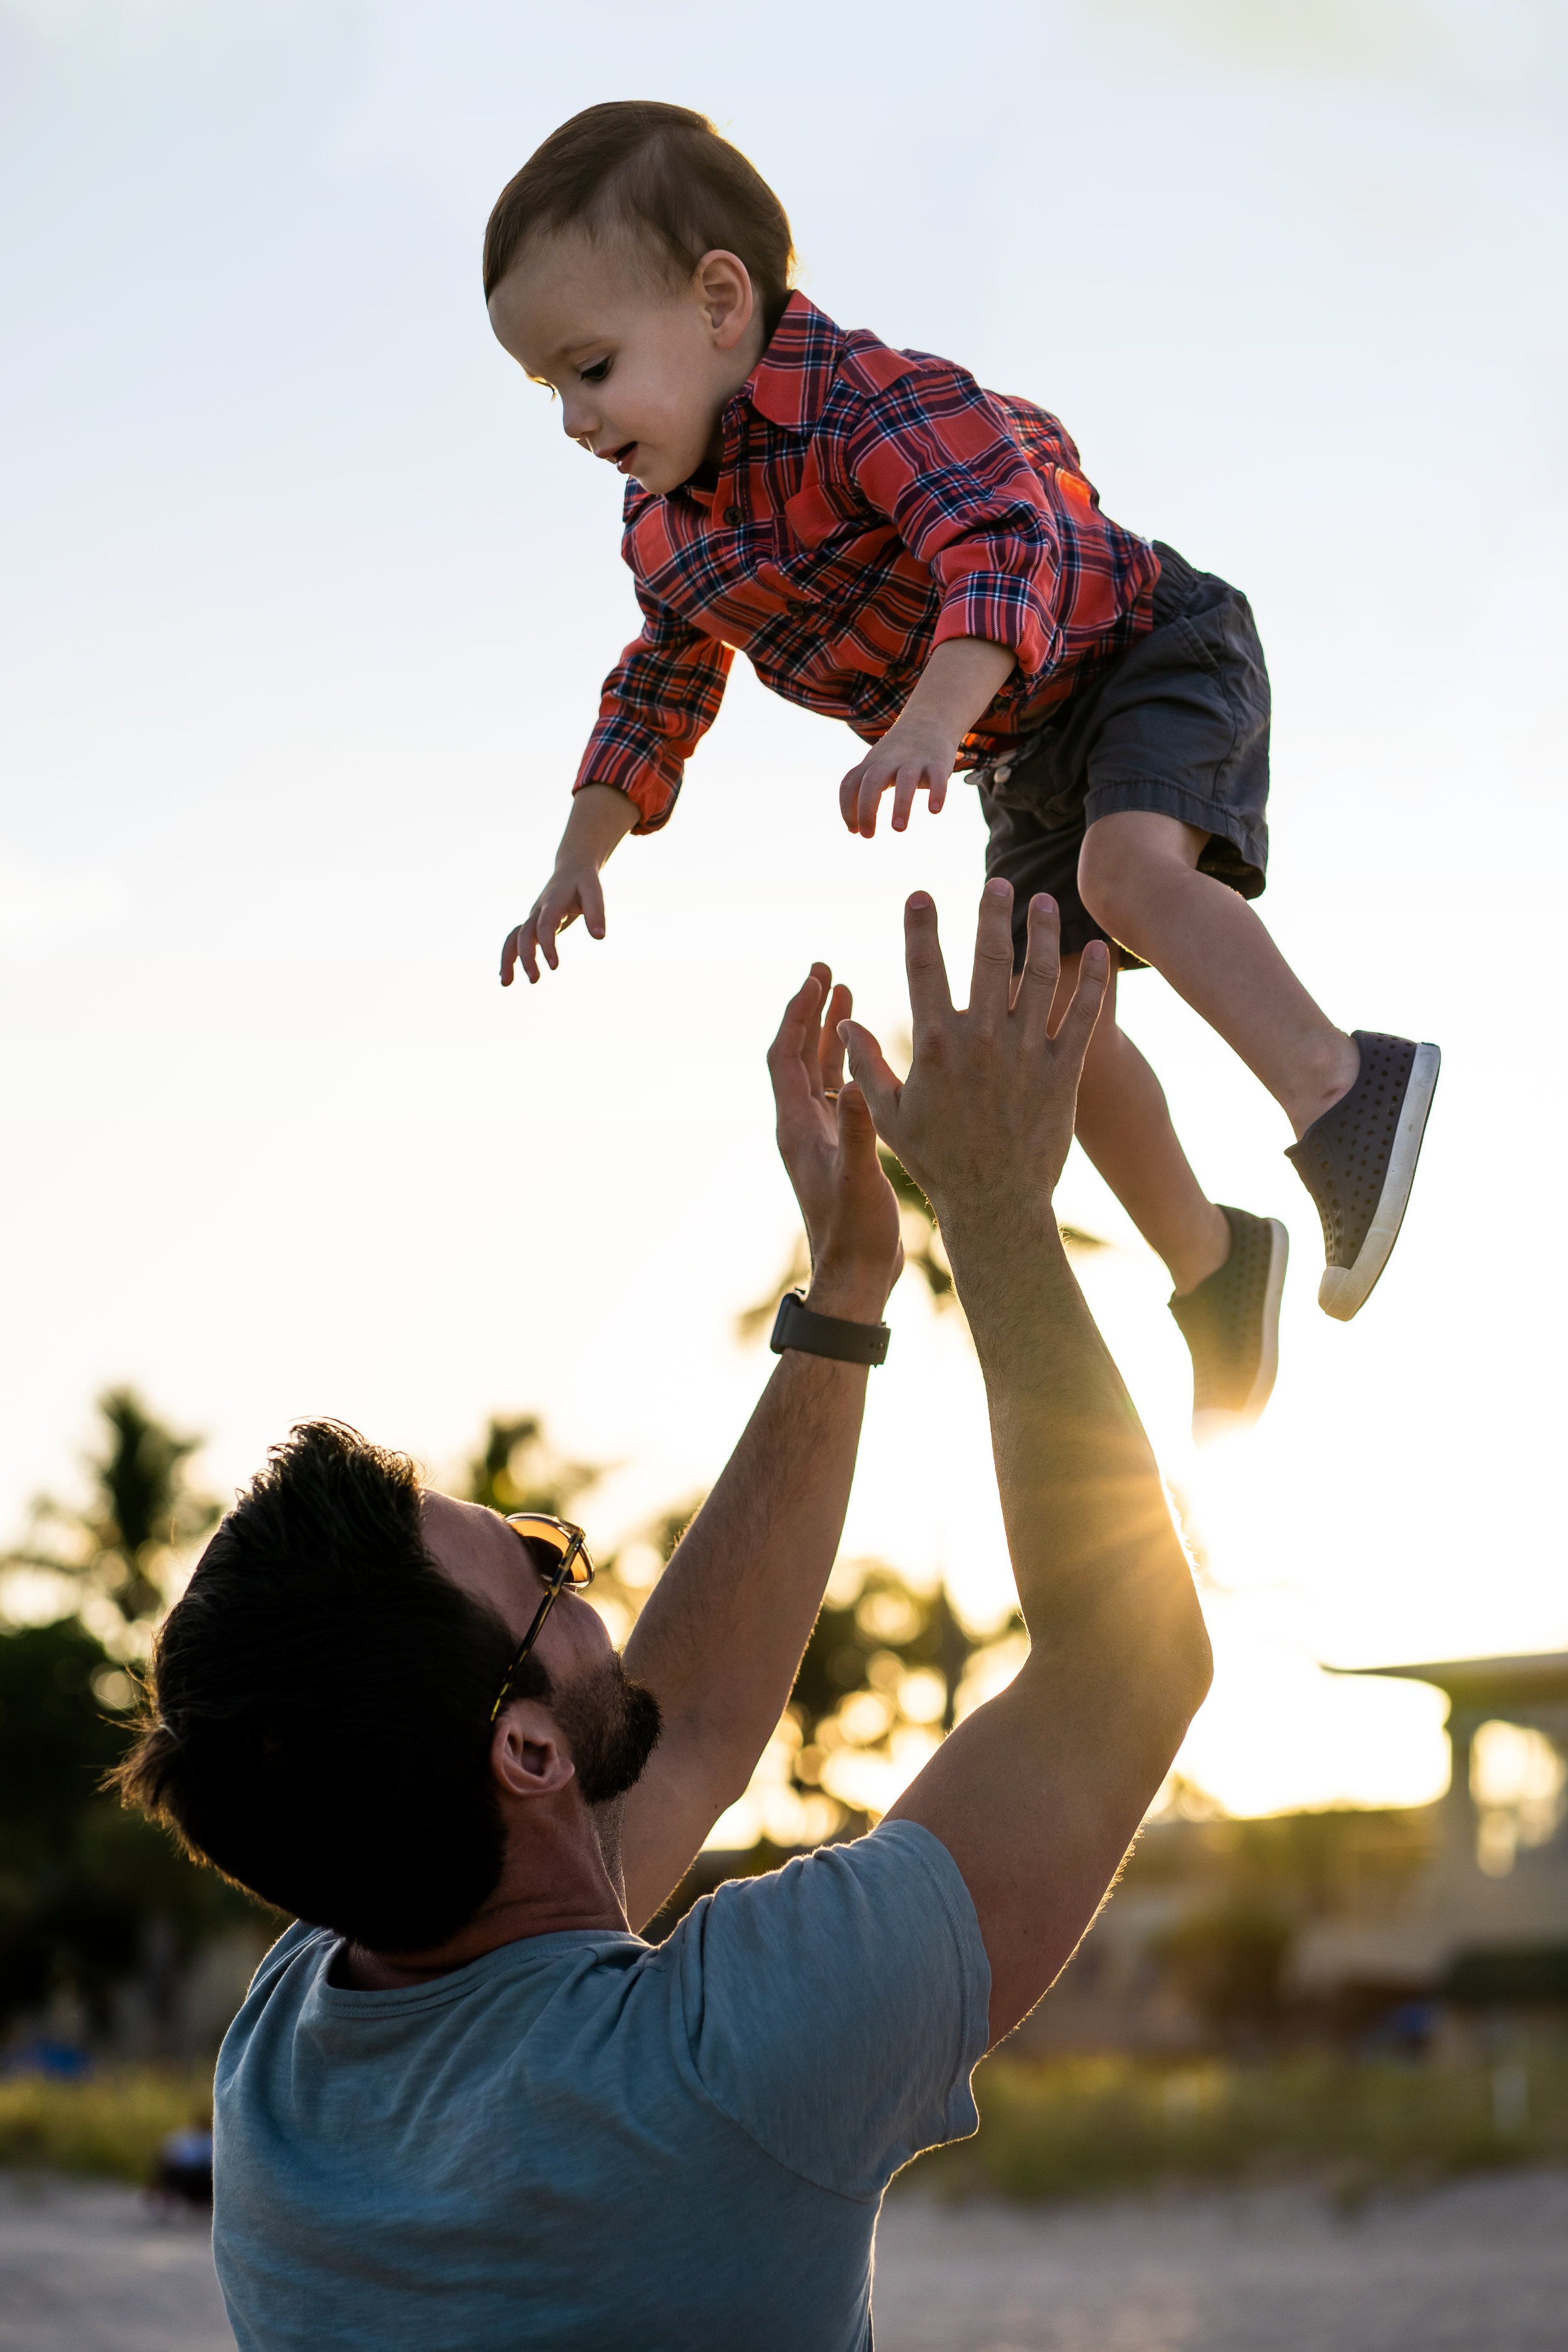 Father Throws Son in Air - Ft Lauderdale Family Photographer